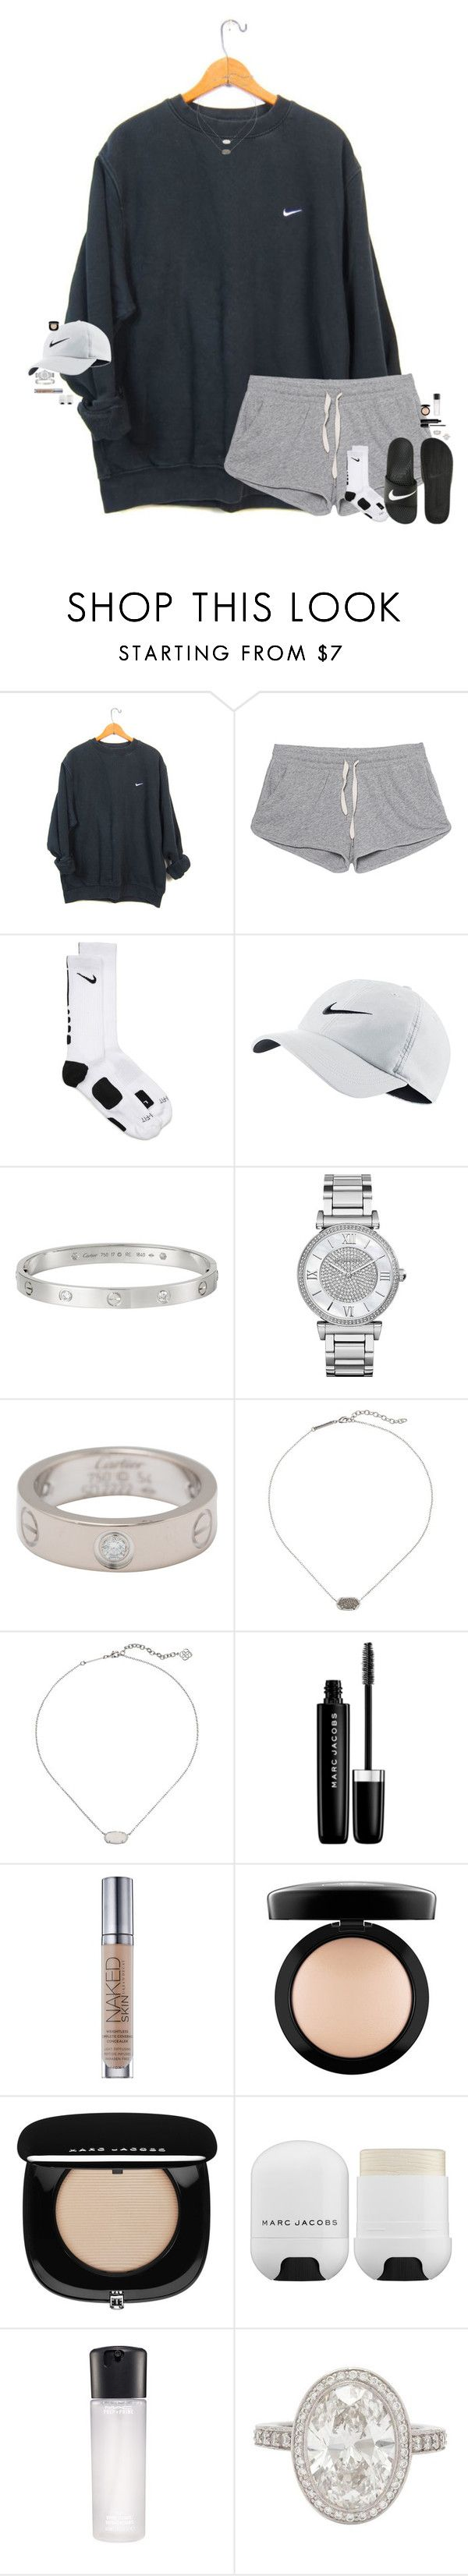 lol no. by maggie-prep ❤ liked on Polyvore featuring NIKE, American Vintage, Cartier, Michael Kors, Kendra Scott, Marc Jacobs, Urban Decay, MAC Cosmetics and Tiffany Co.